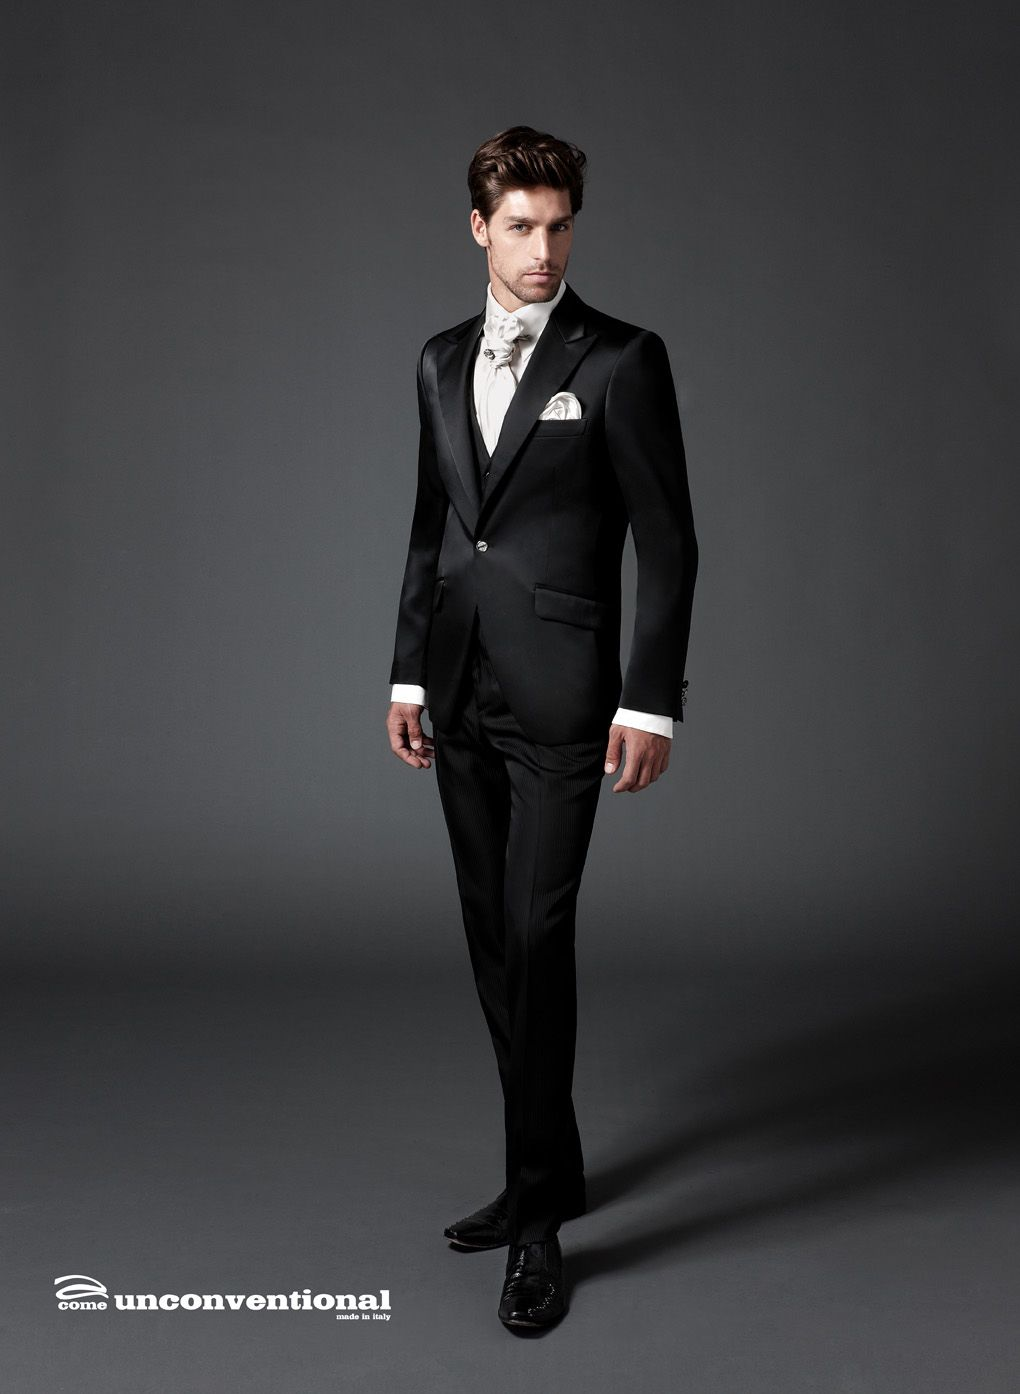 Unconventional by Archetipo - Men's formalwear 2013